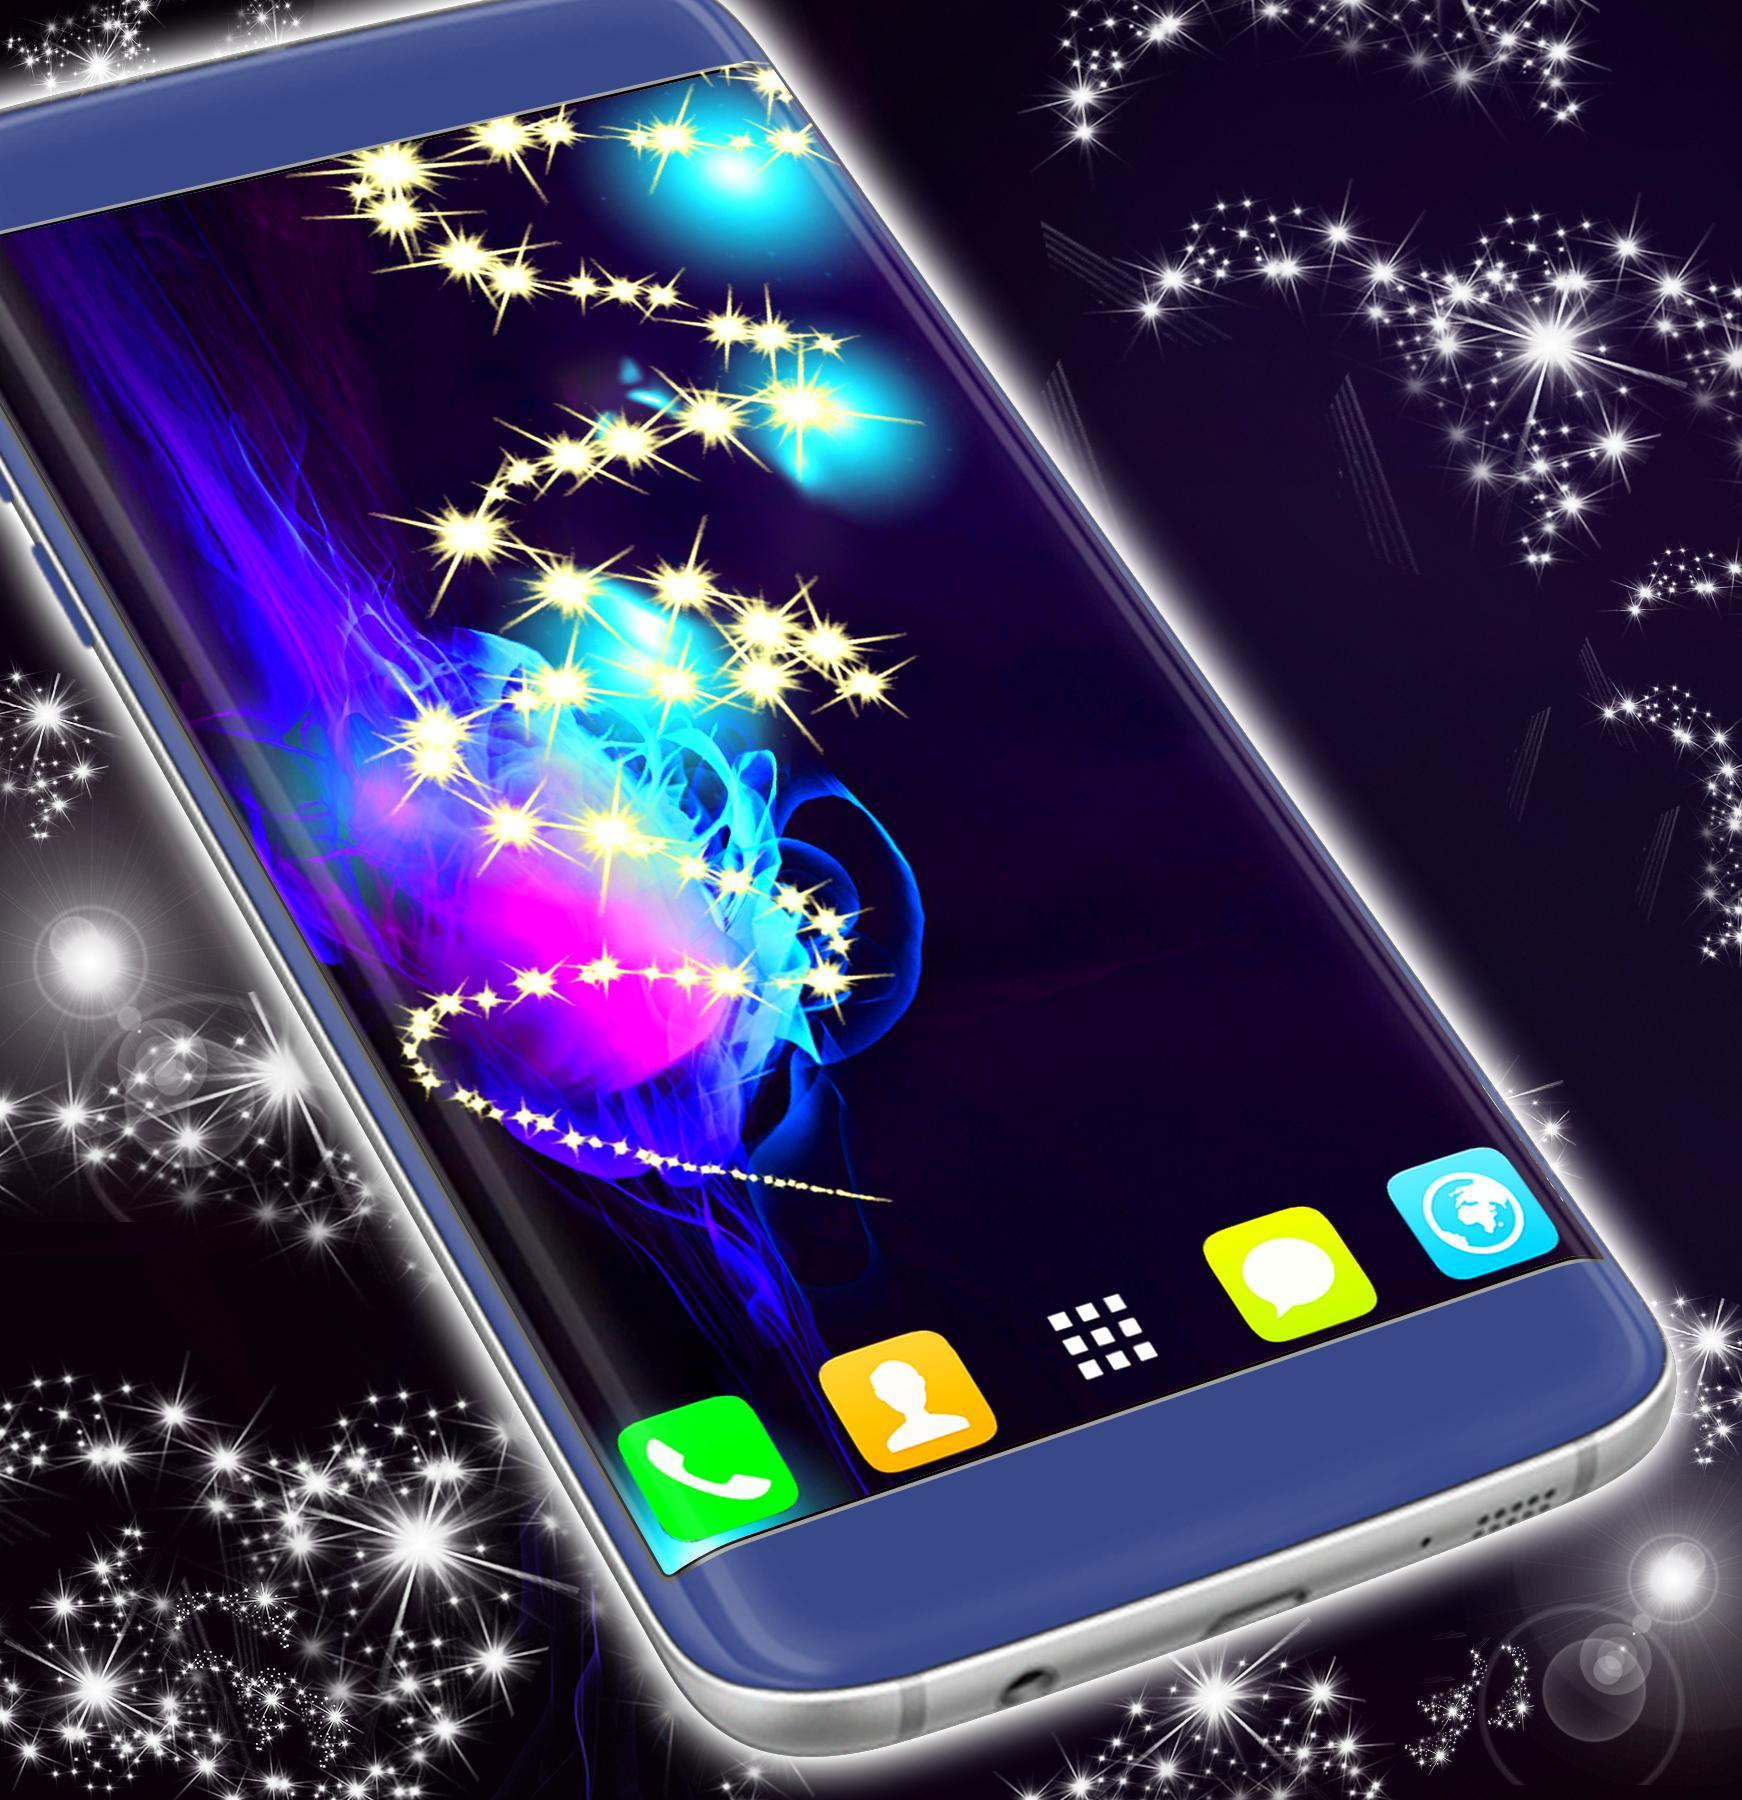 Hd 3d Live Wallpapers For Samsung Galaxy S6 Edge For Android